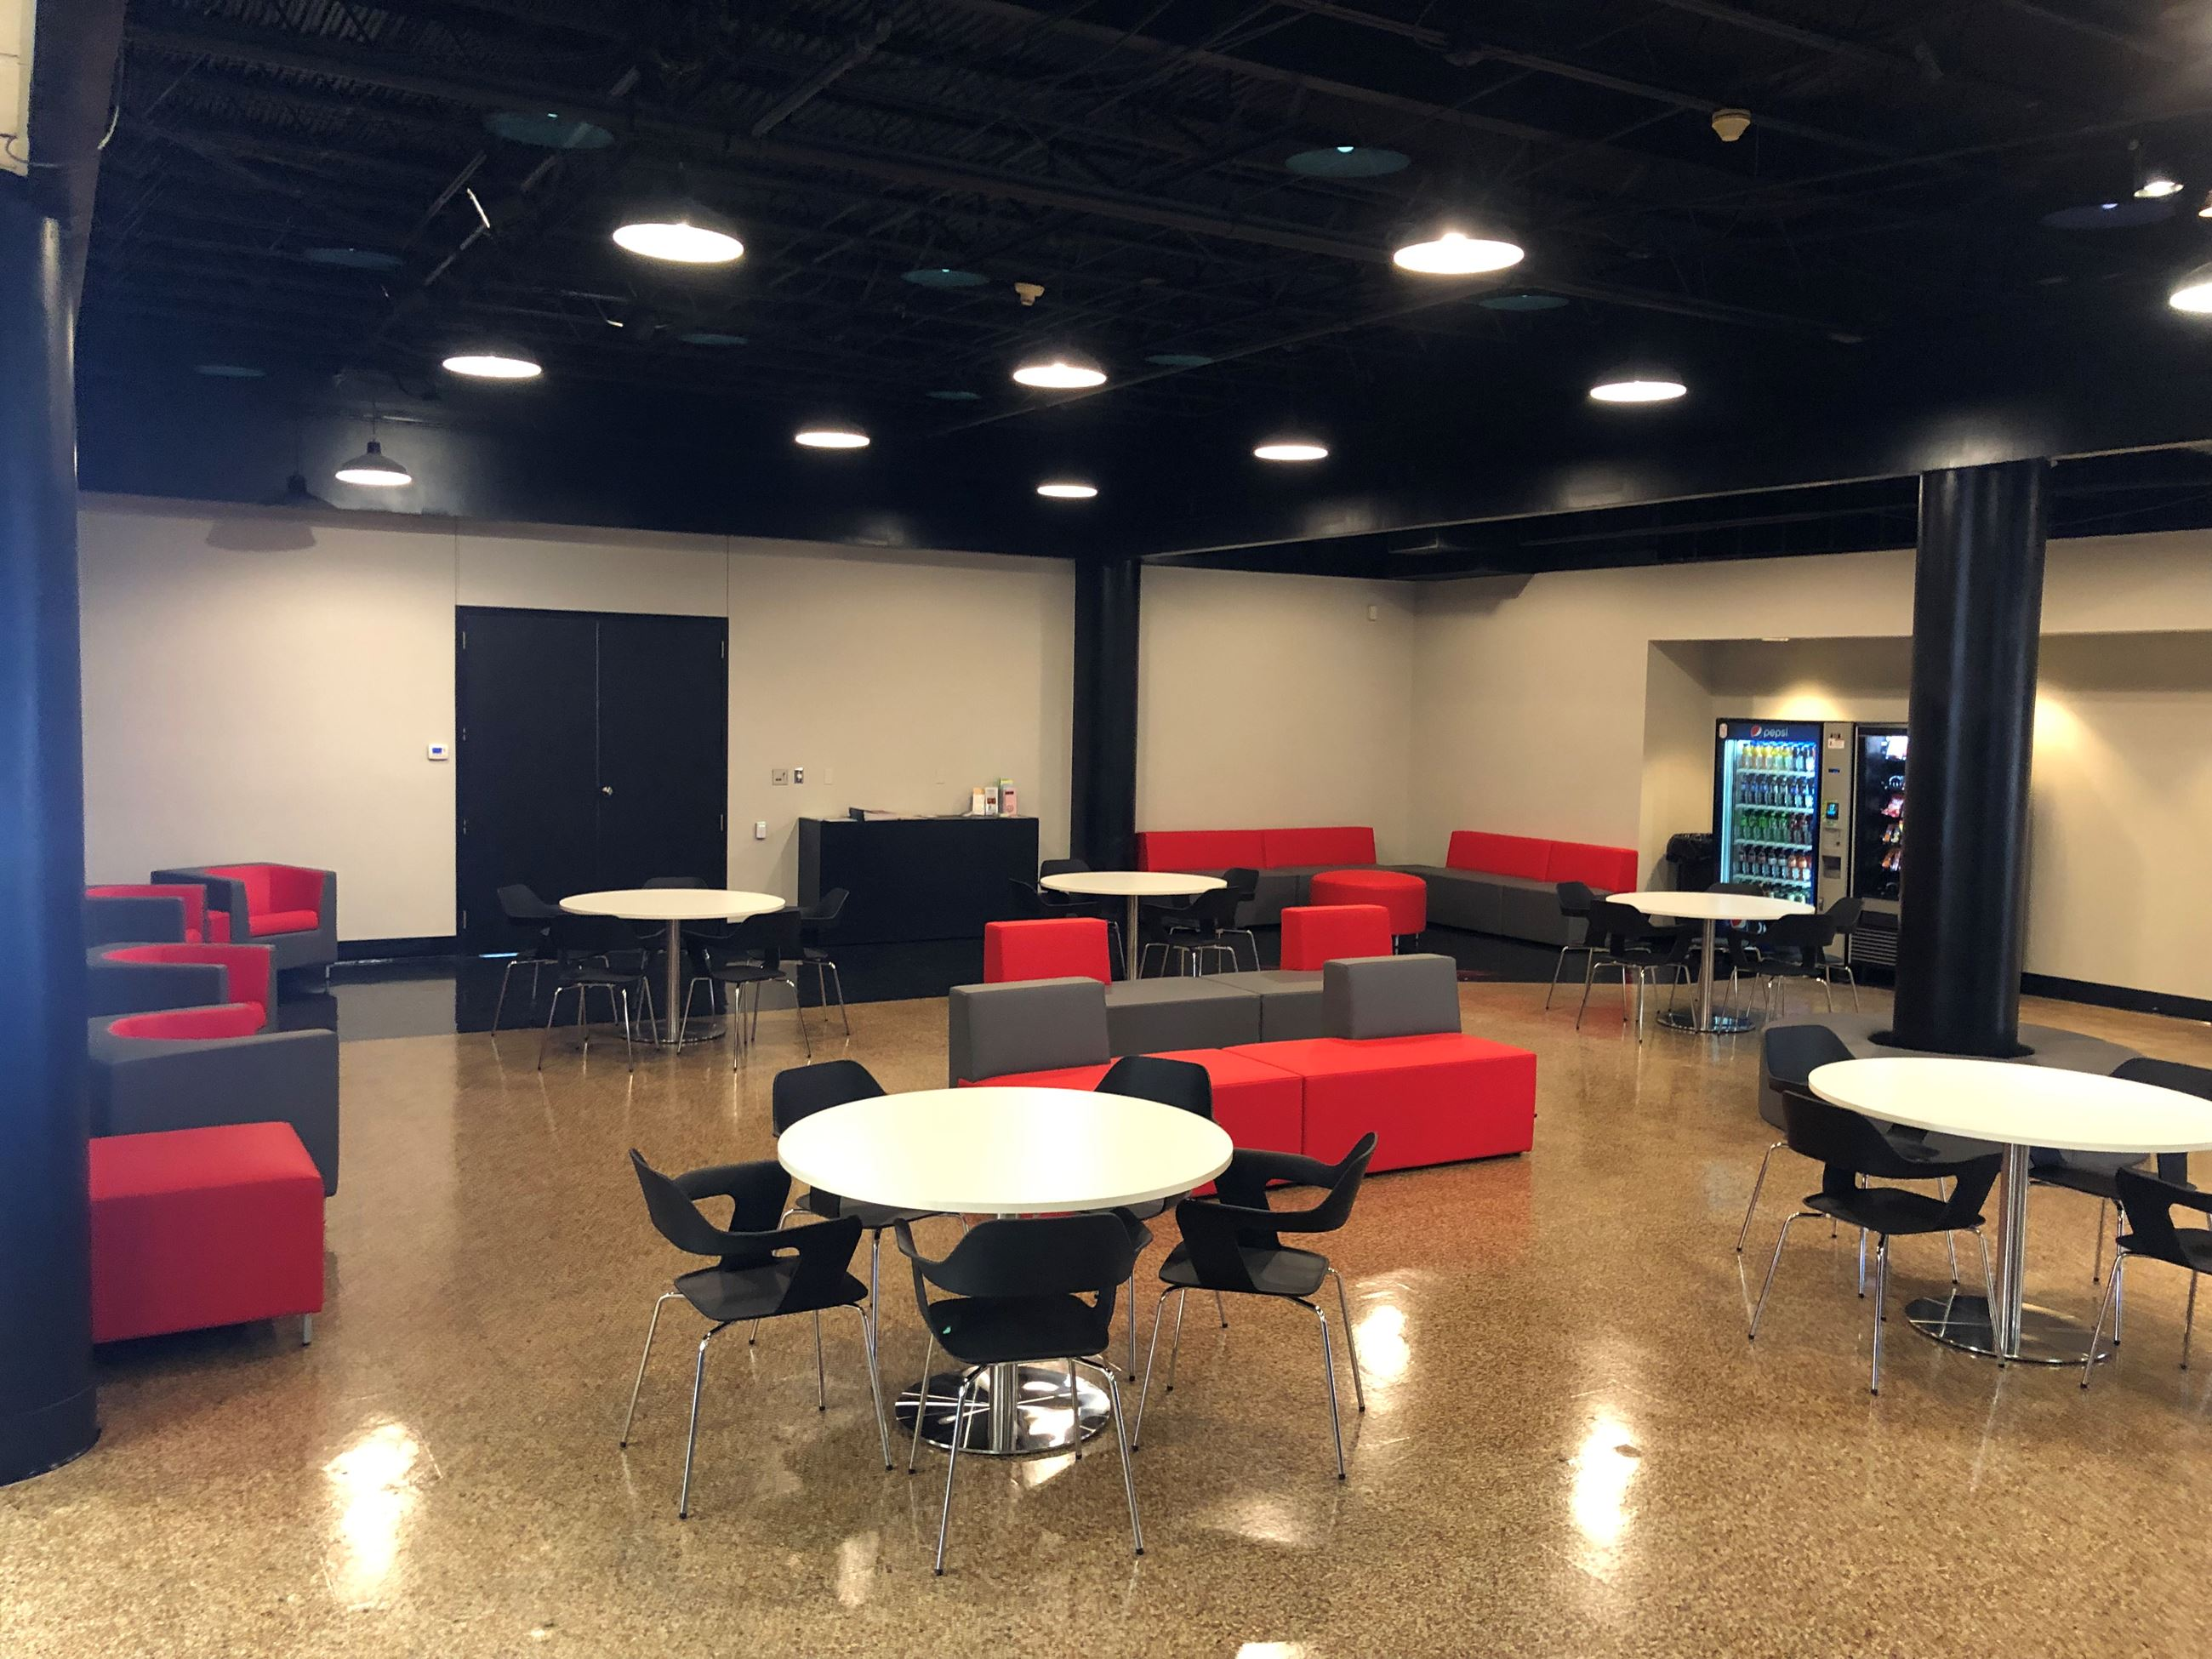 Hardin Center Parent and Student Lounge (1)